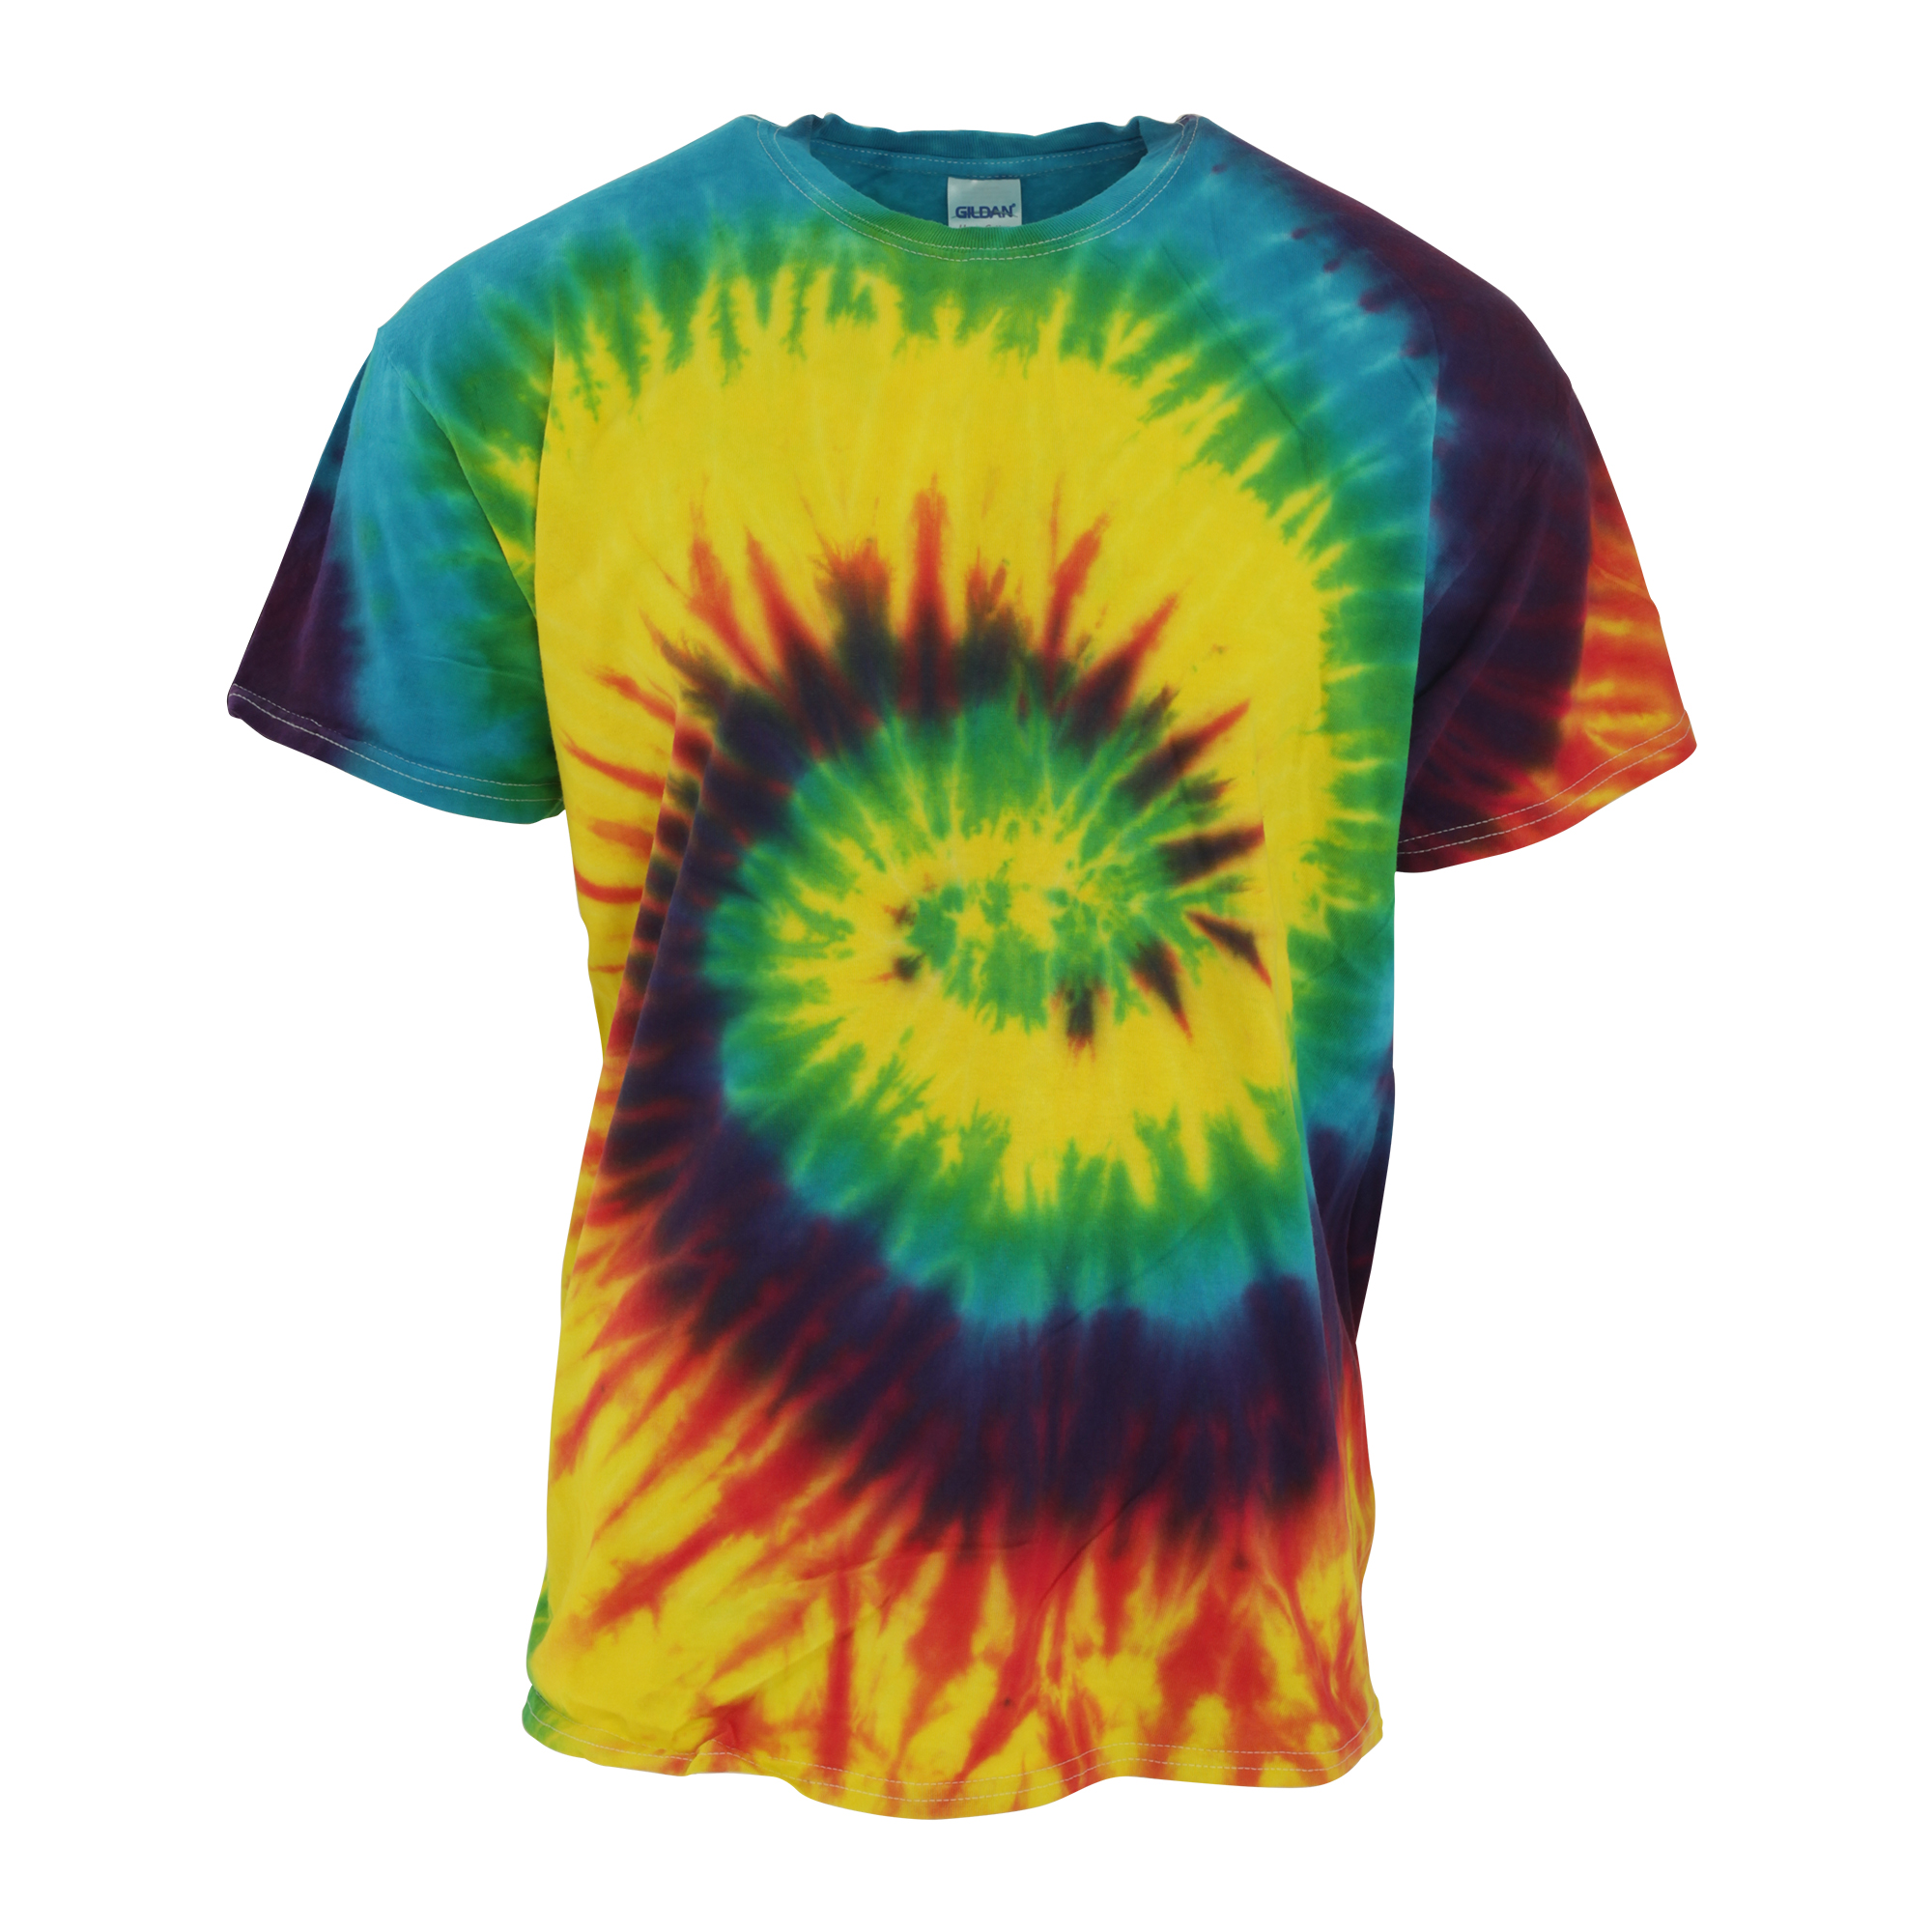 Tduk mens short sleeve rainbow tie dye t shirt 6 colours s for Nike tie dye shirt and shorts